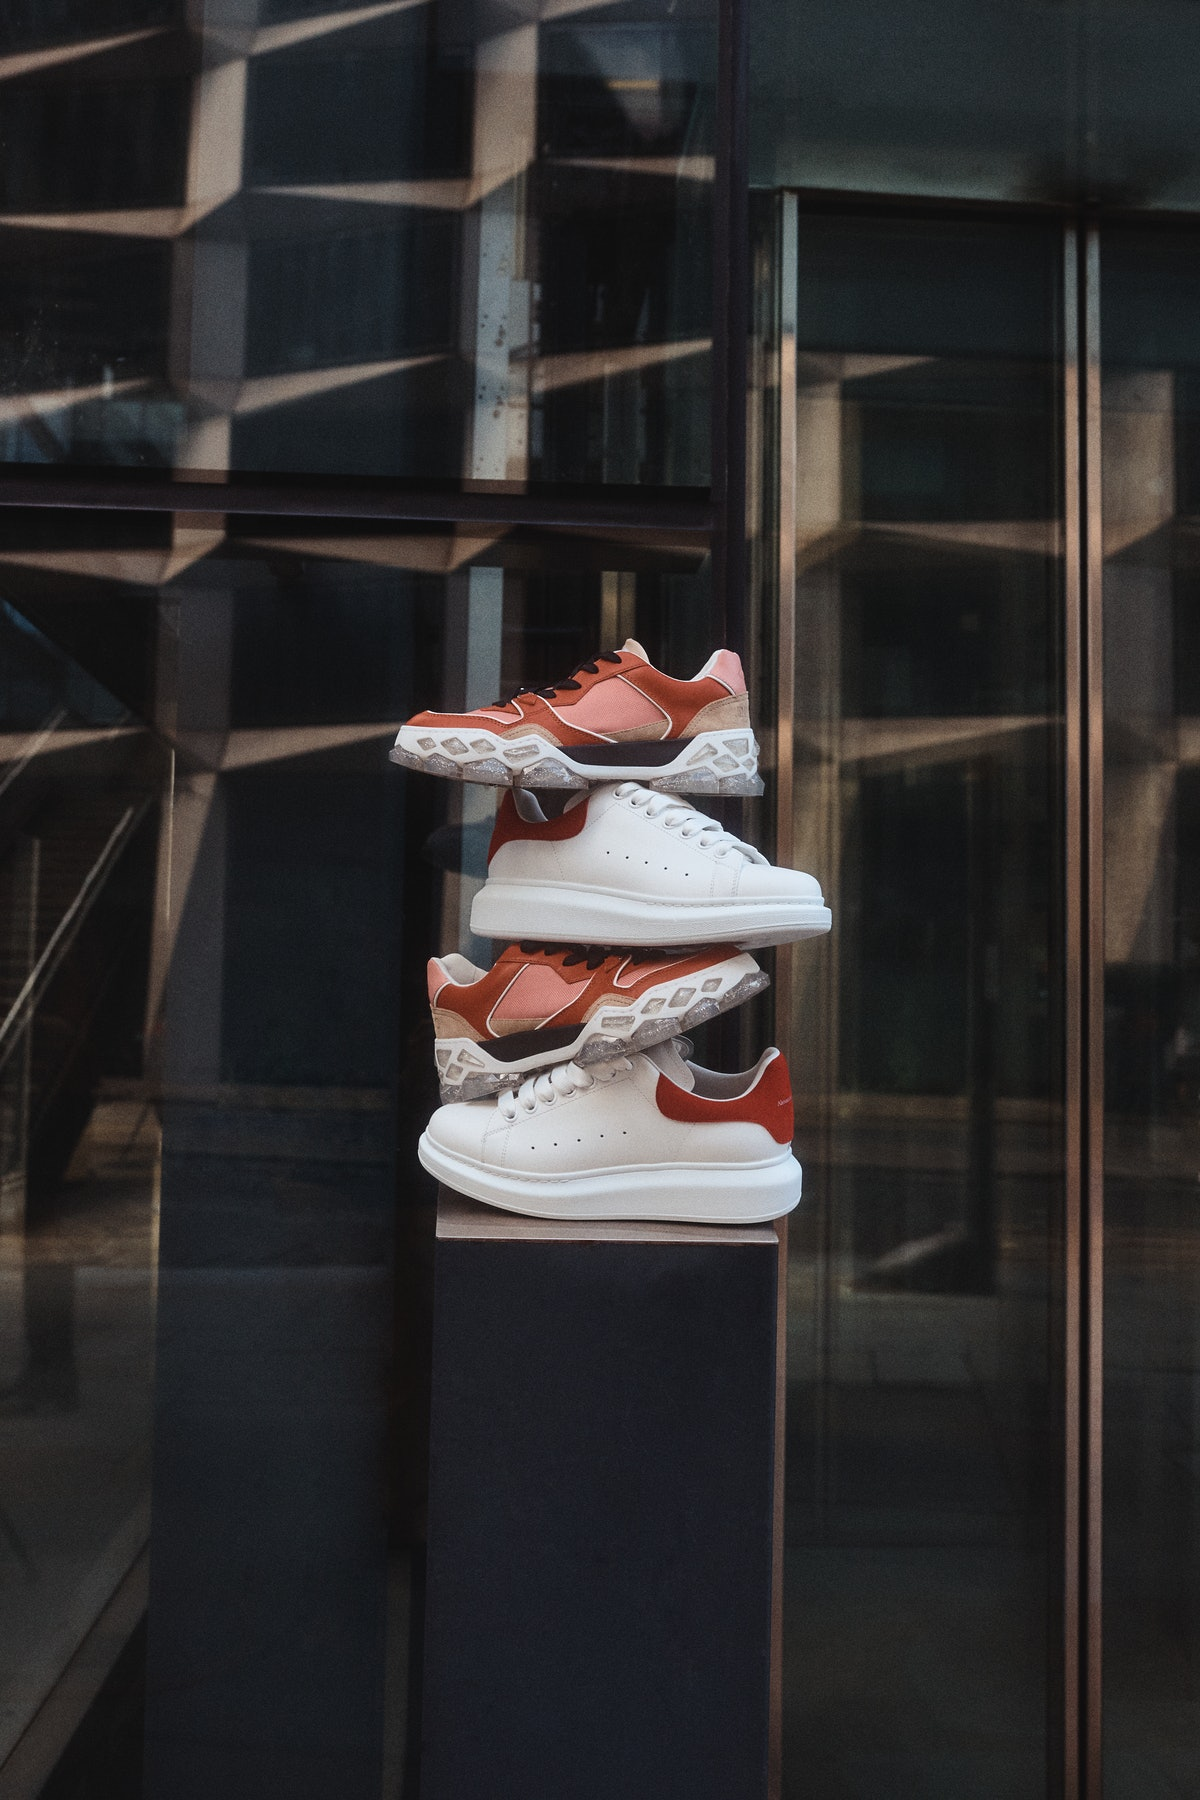 Popular sneakers for fall/winter 2021.